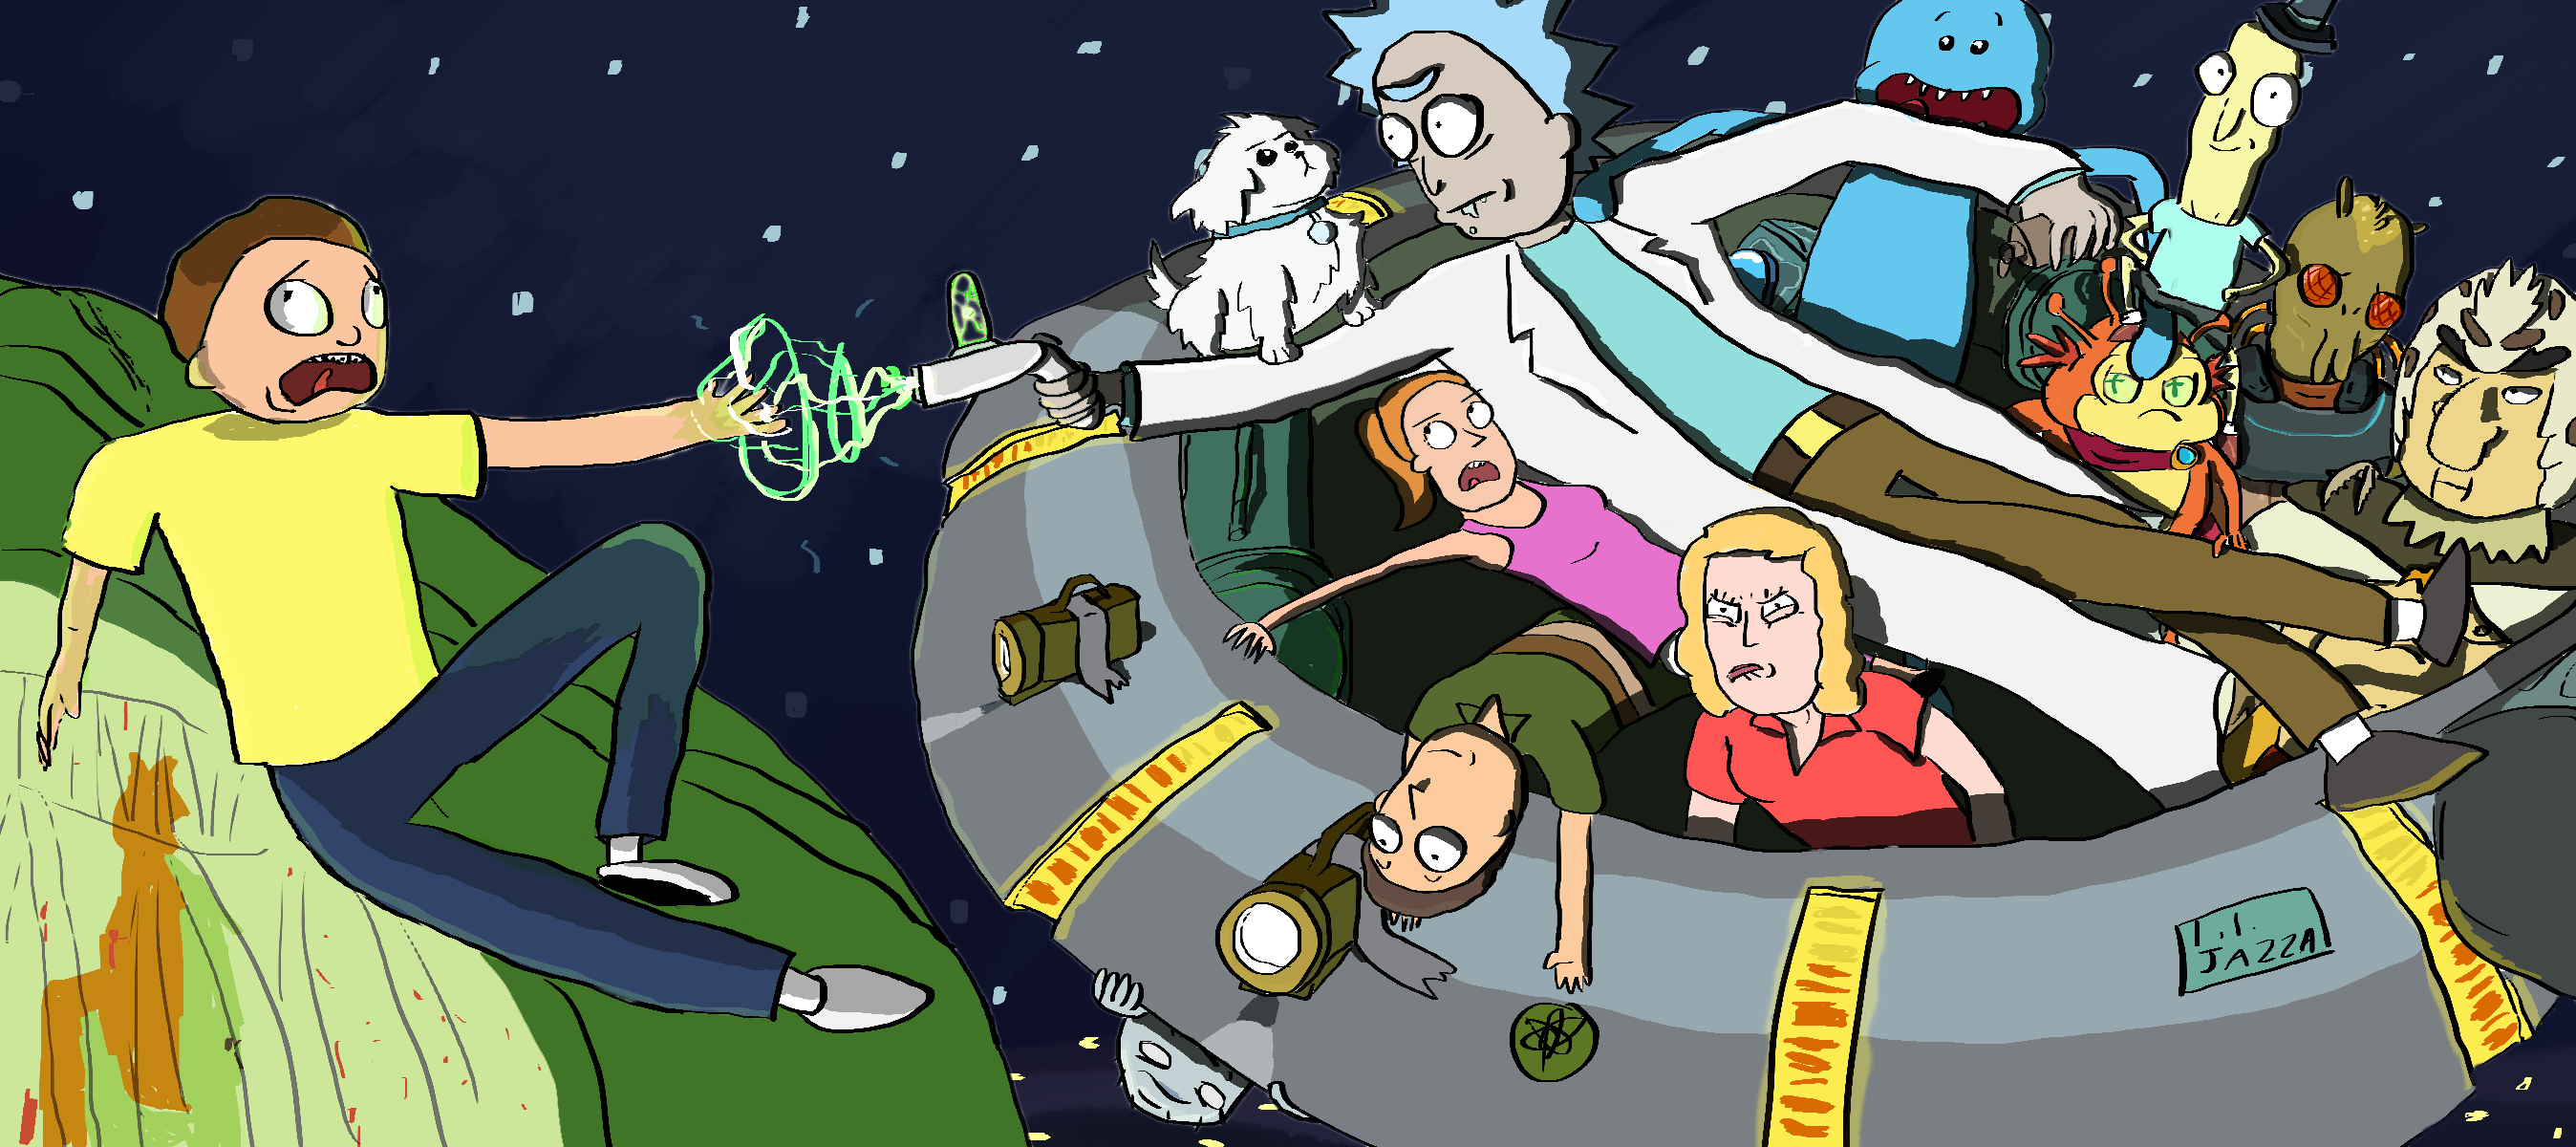 Creation of Morty